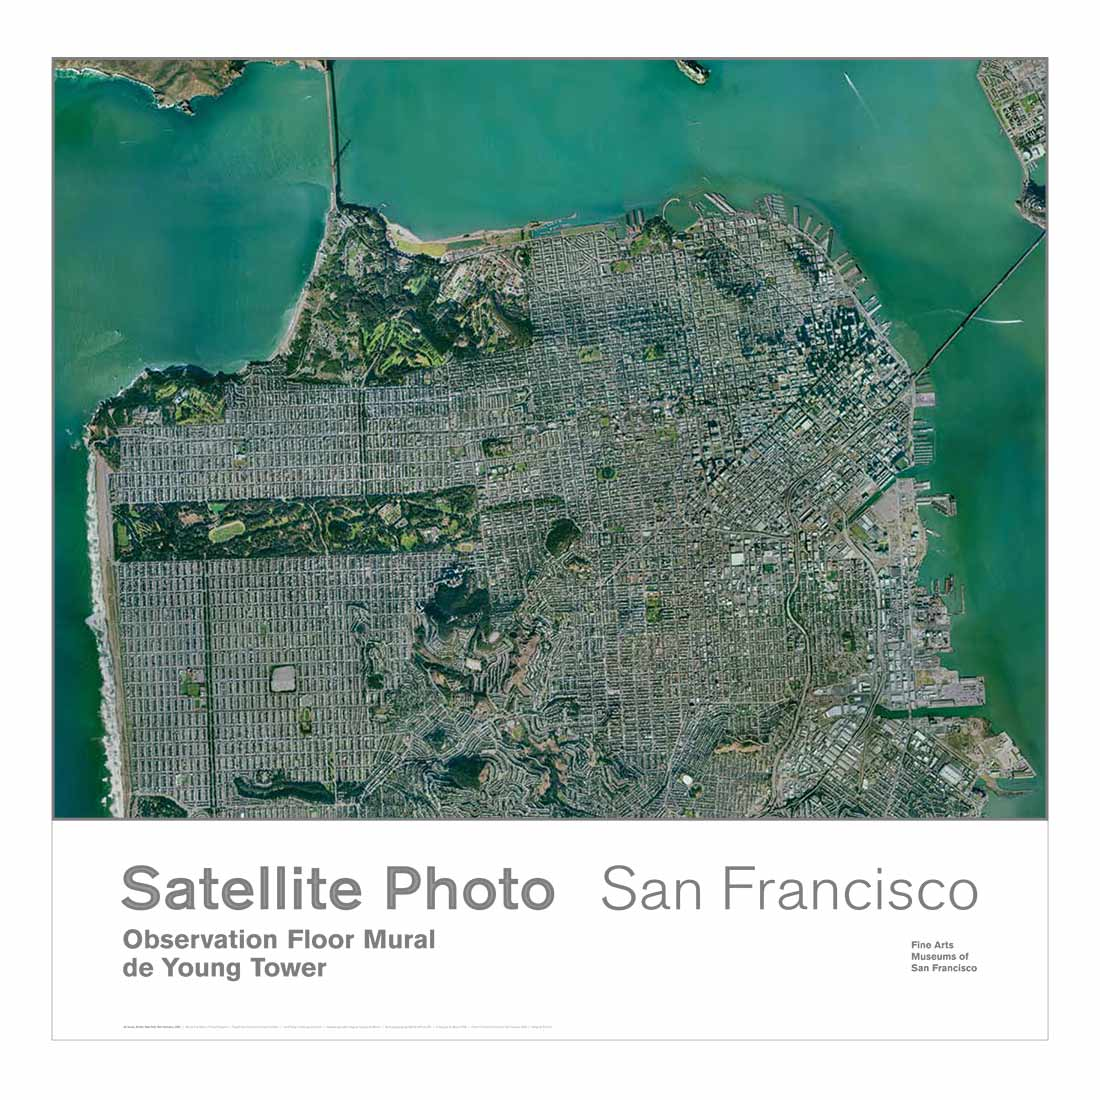 Satellite View of San Francisco Poster on aerial view, see your house street view, route planning software, maps that show property lines, maps get directions, maps showing property lines, google map maker, google voice, bing maps, maps from mexico city, yahoo! maps, maps latitude, google mars, maps google, google latitude, google sky, street level driving view, maps street, maps earth, bing maps platform, manhattan view, nokia maps, dubai street view, google street view, earth view, web mapping, satellite map images with missing or unclear data, google search, maps and directions, google moon, maps weather, journey planner, google earth,